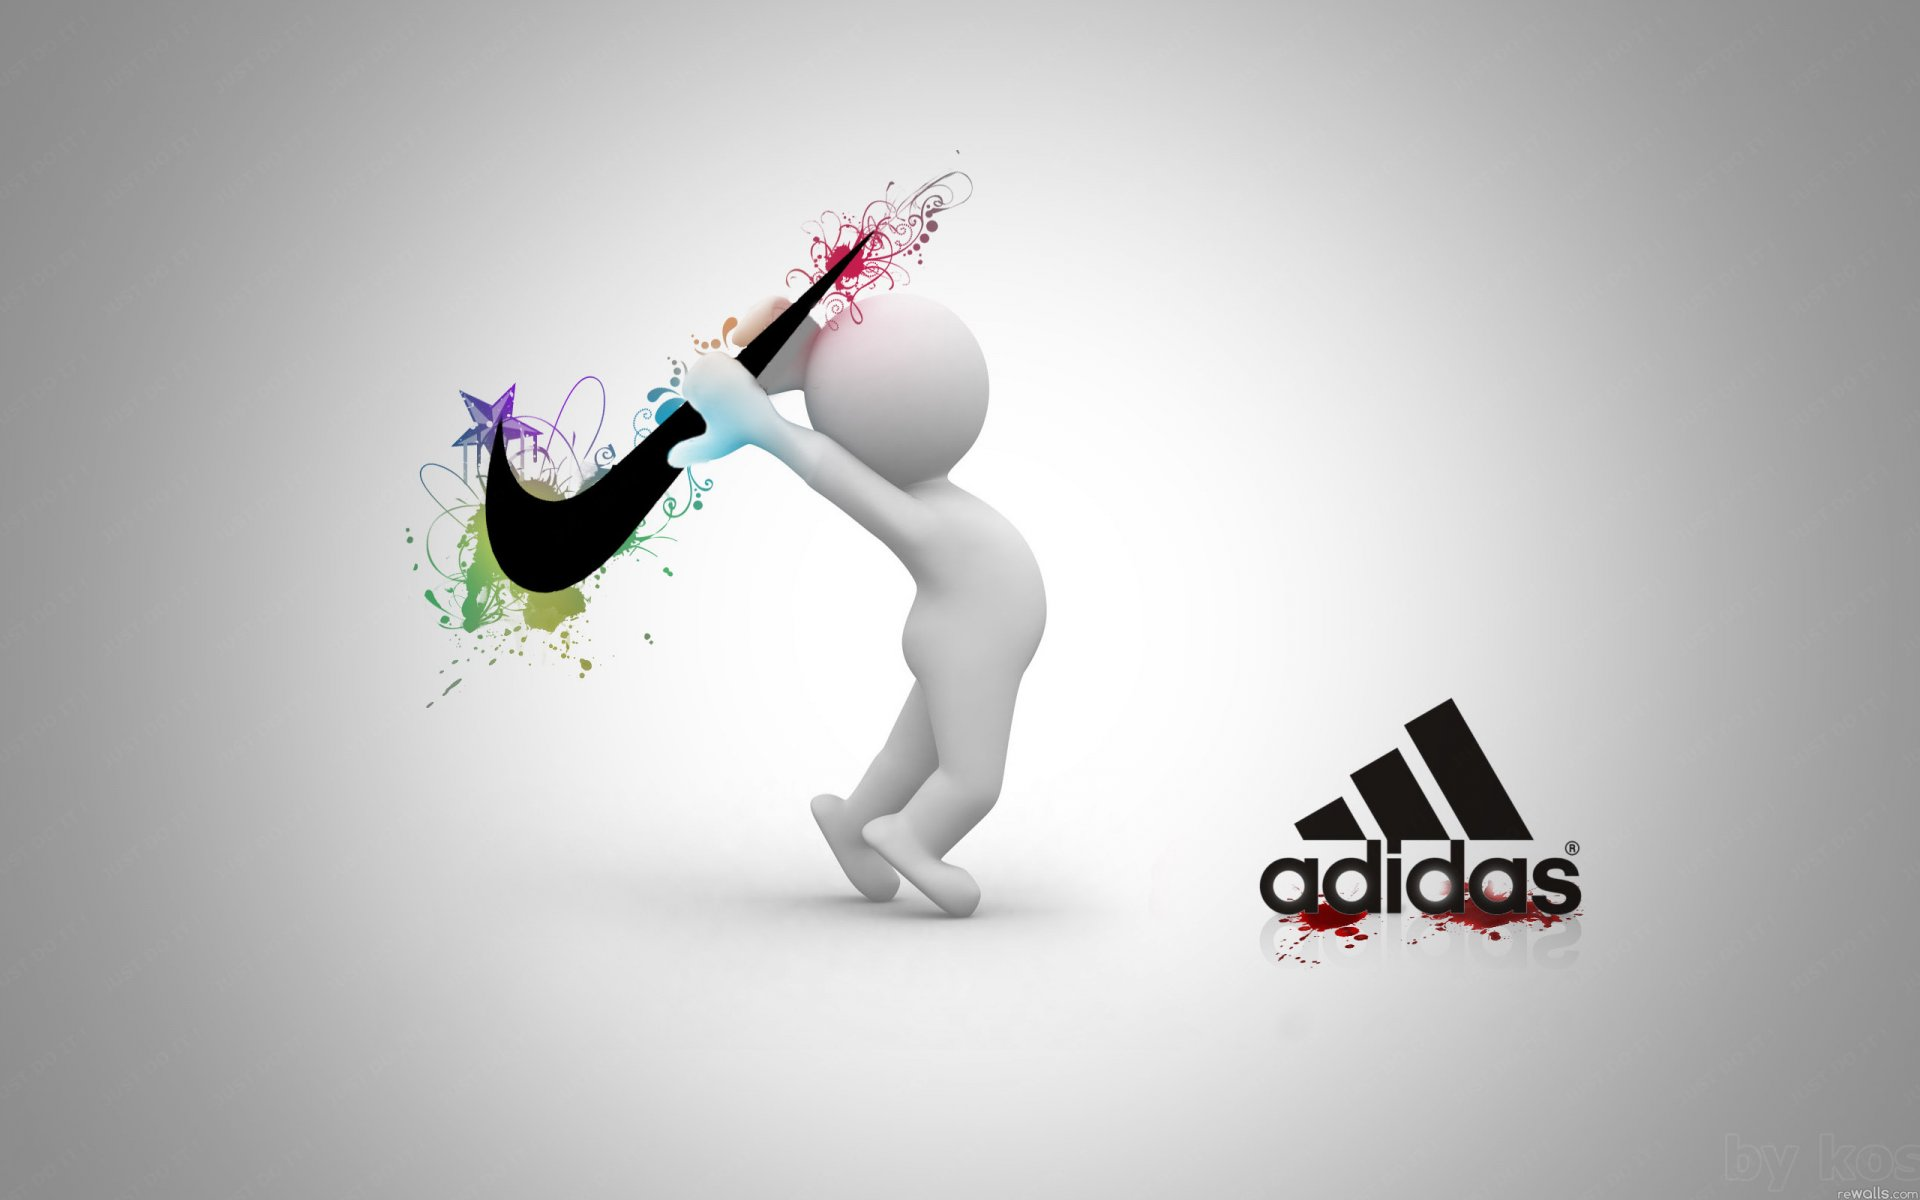 nike vs adidas Nike's trading company is the nissho iwai corporation adidas outsourced its production but the design and development process is based in germany in 1993, adidas moved its production overseas to asia in order stay competitive in the industry.